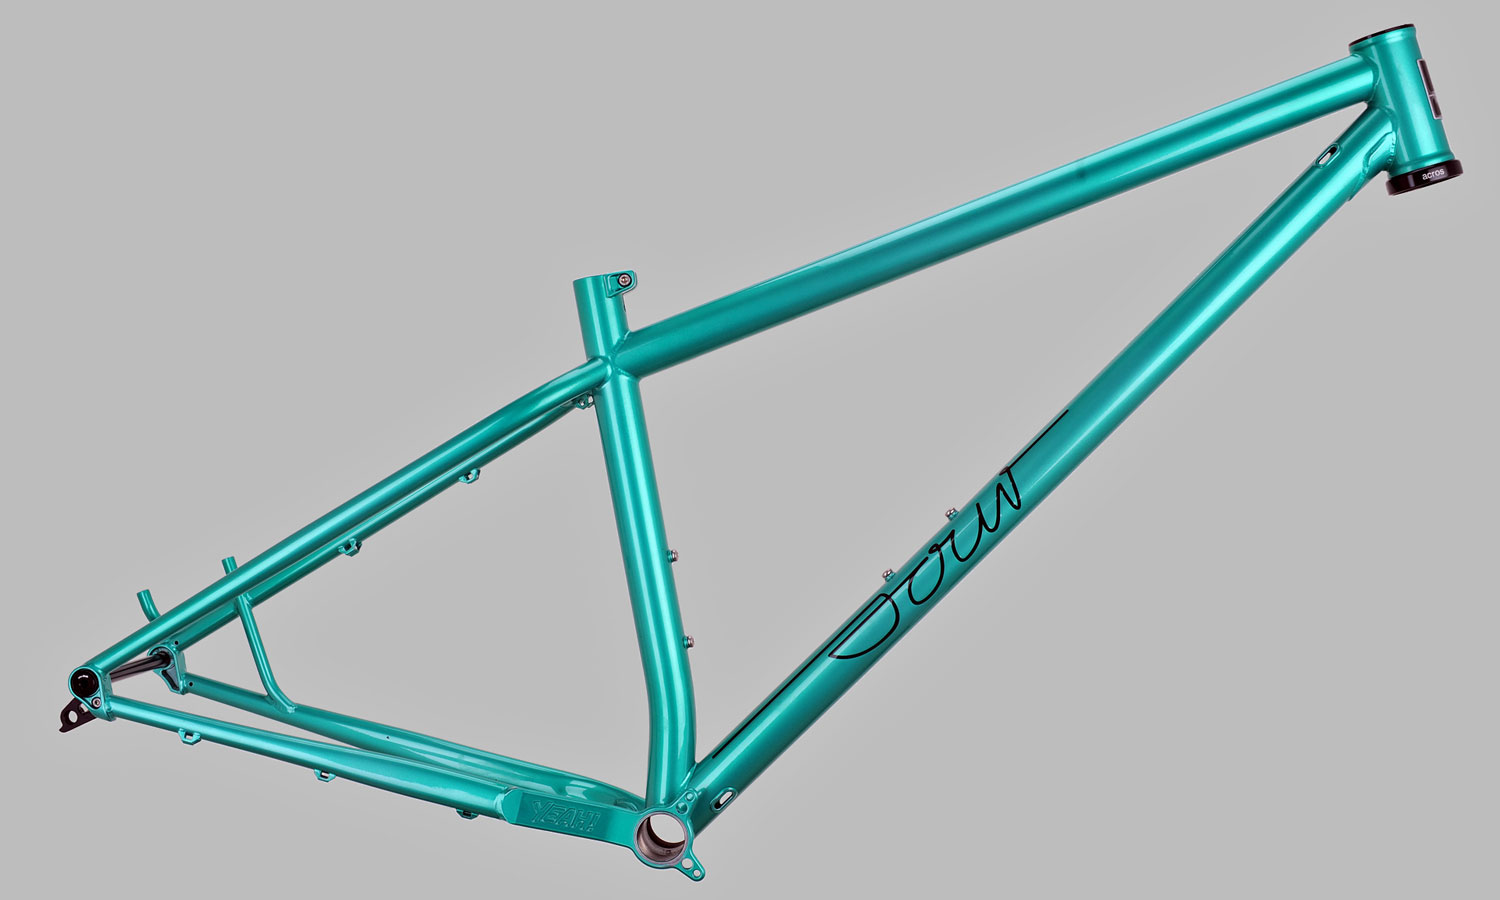 2021 Sour Bikes affordable steel frame updatesCrumble